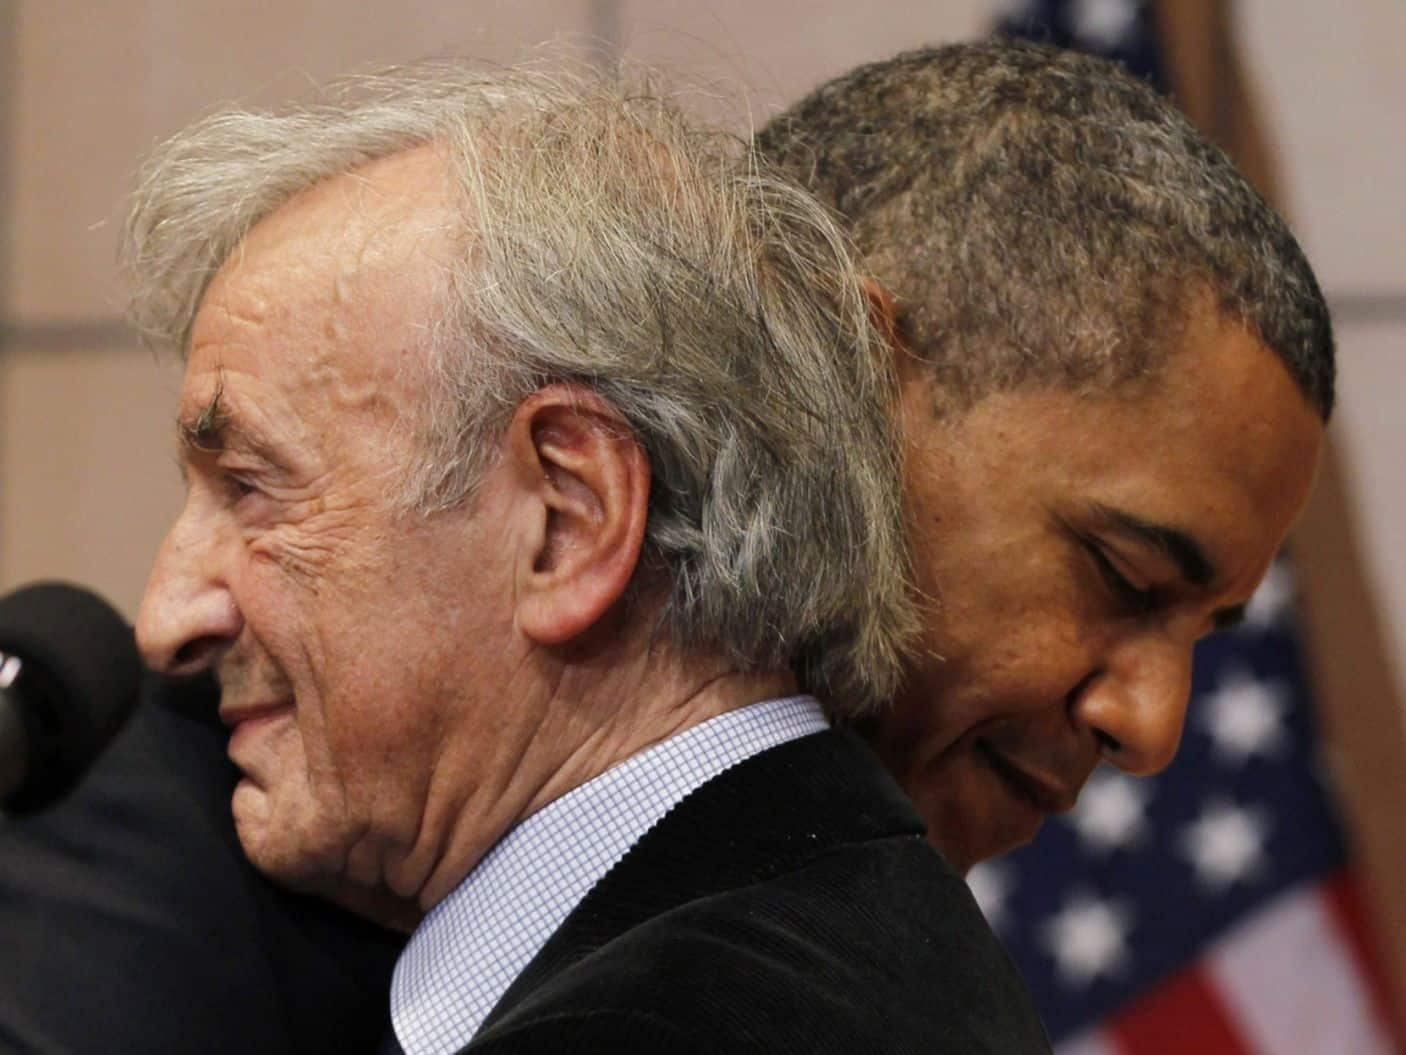 Elie Wiesel, Nobel Peace Prize laureate and renowned Holocaust survivor, dies at 87